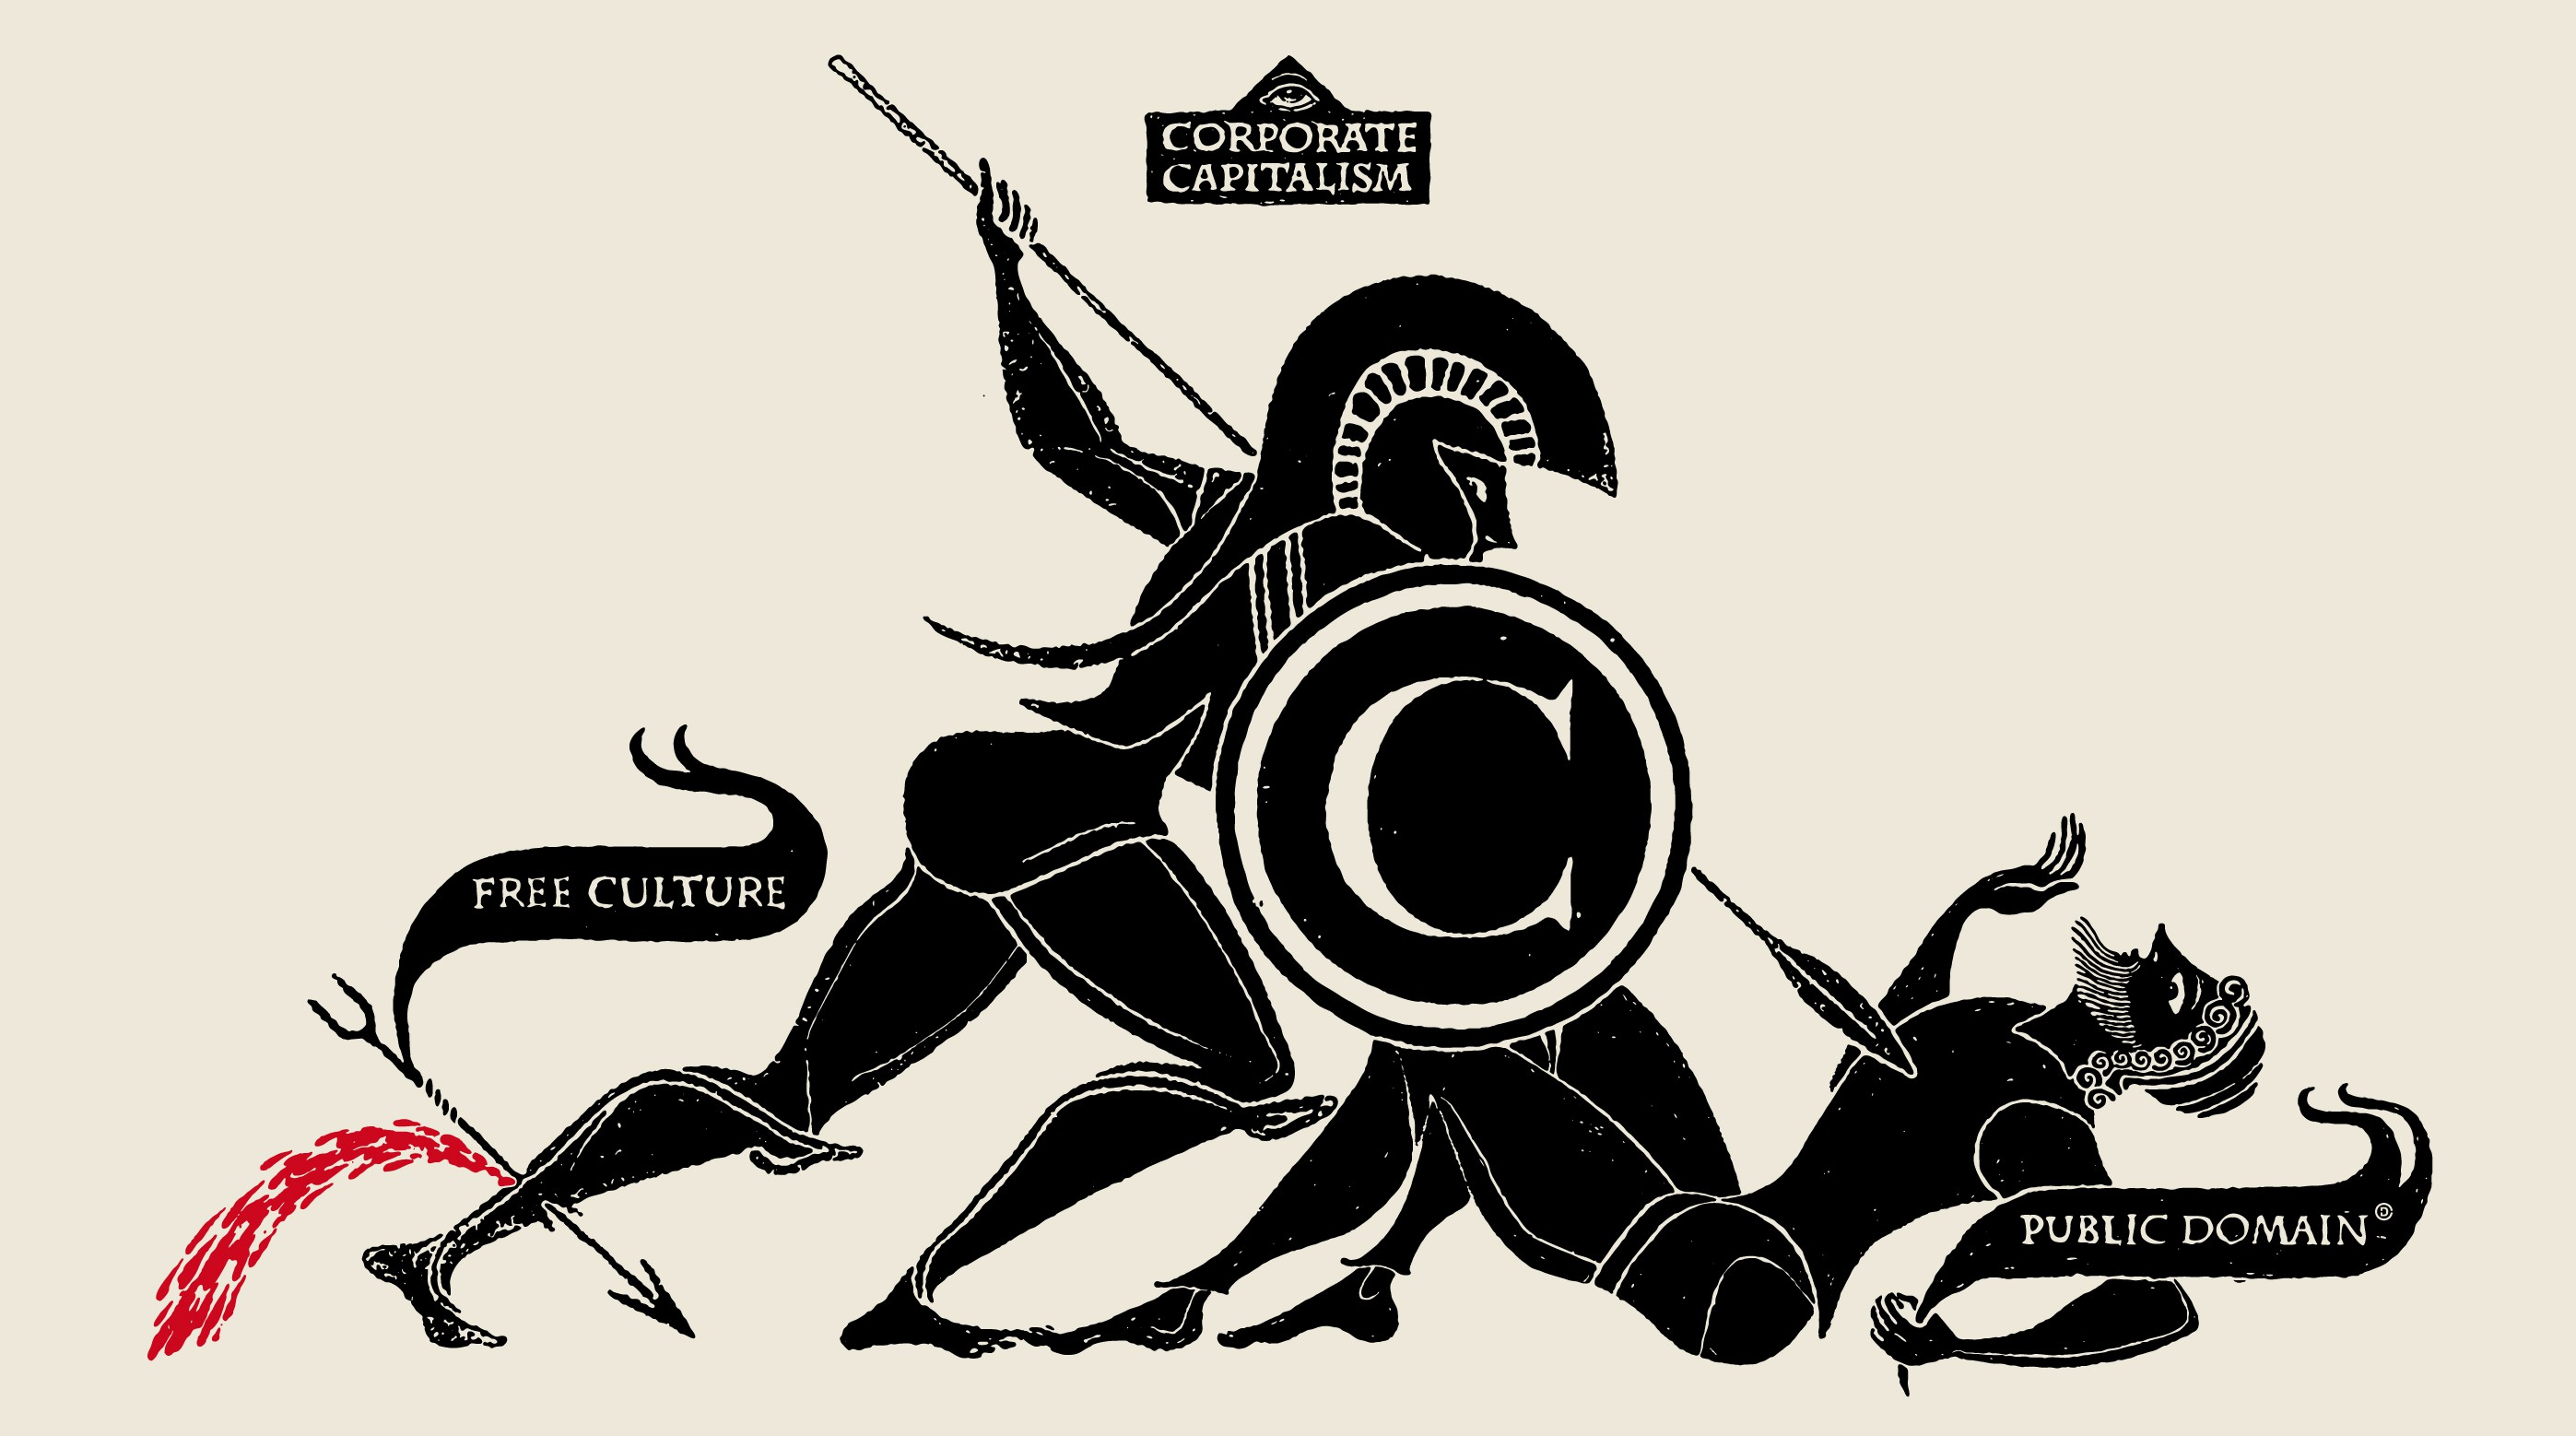 THE BATTLE OF COPYRIGHT 2011 (CHRISTOPHER DOMBRES)